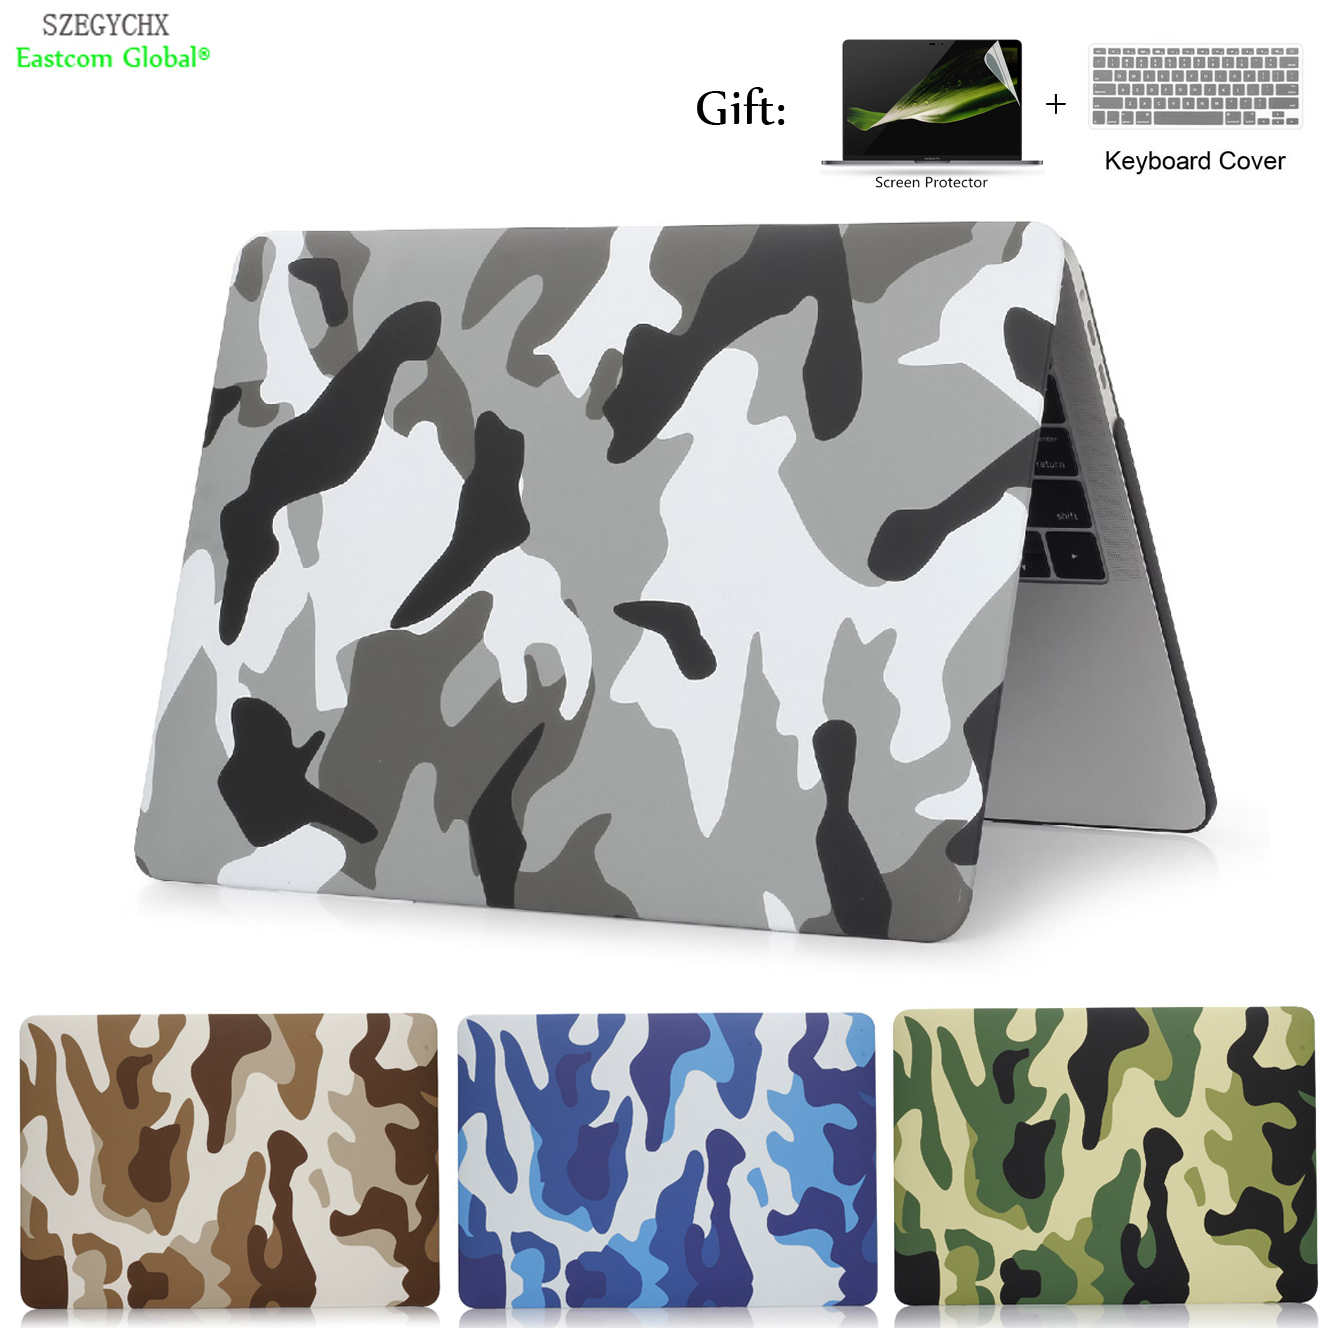 Funda de camuflaje para laptop para MacBook Air 13 11 Pro Retina 12 13.3 15 barra táctil Para Macbook New Air 13 A1932 2018 funda